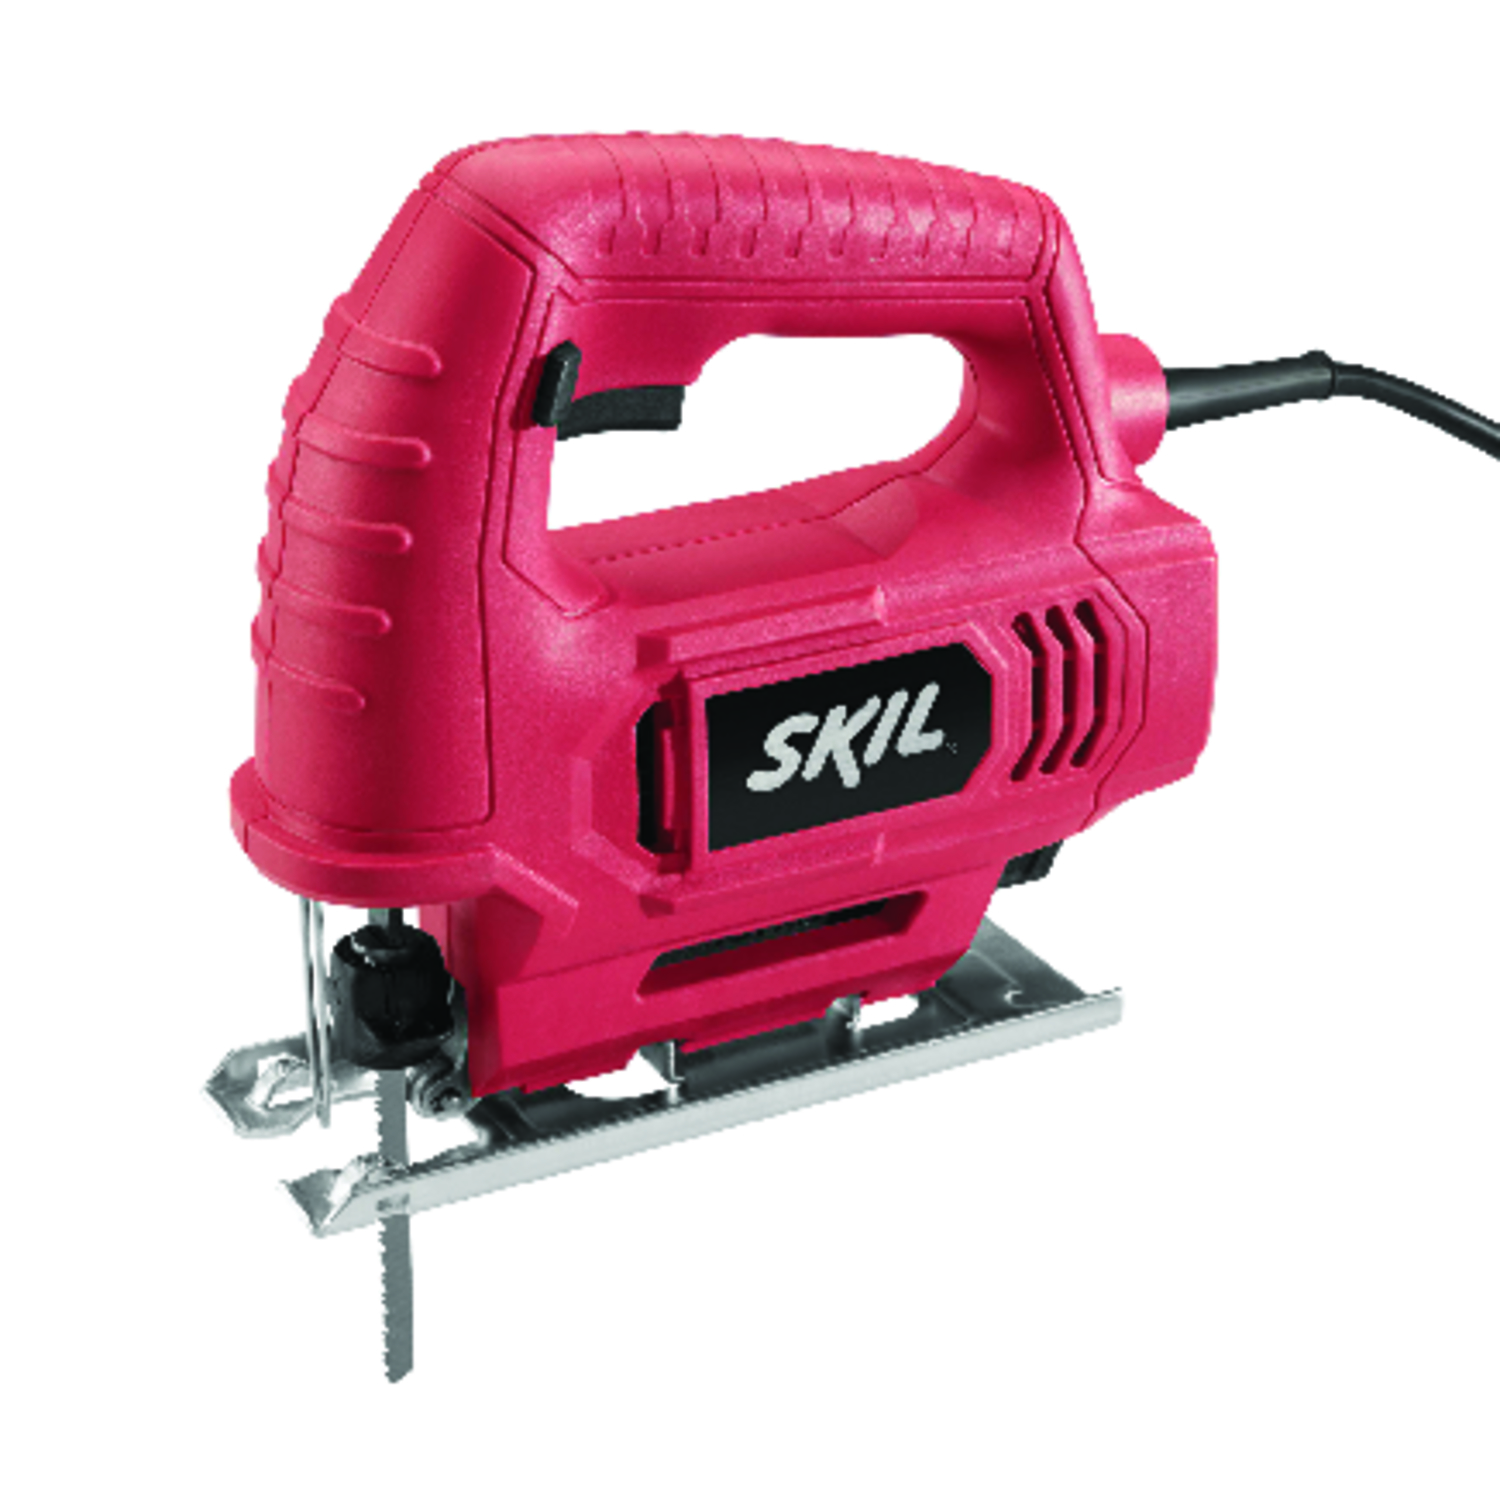 Skil  2-1/4 in. Corded  Keyless Jig Saw  120 volts 4.5 amps 3250 spm